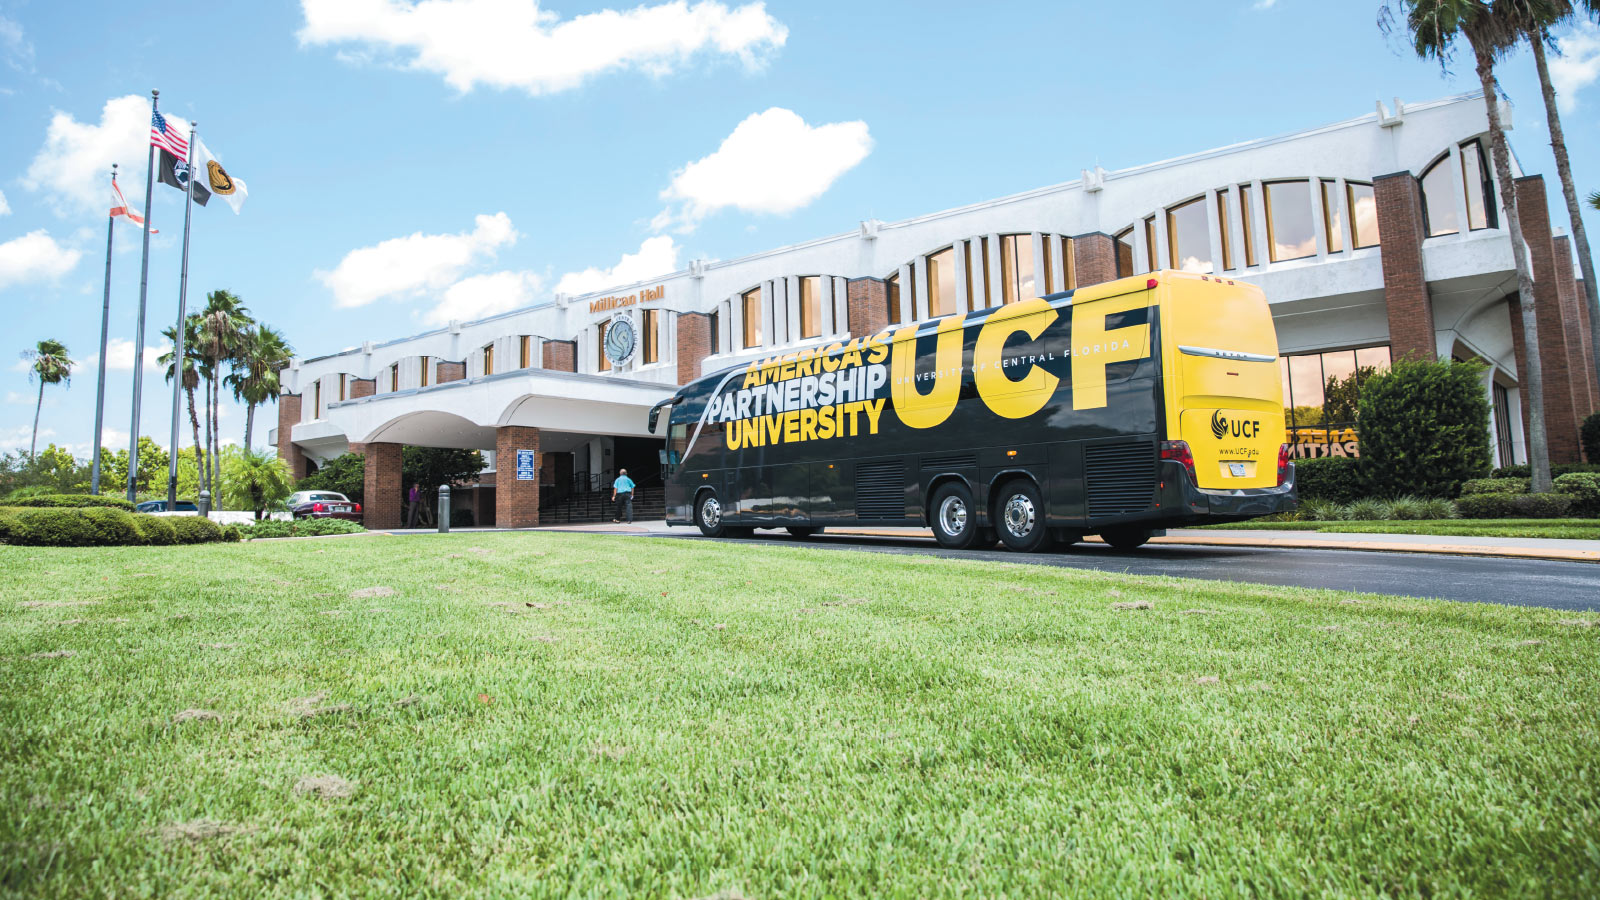 One of the two new buses that travel to and from the Rosen College of Hospitality Management